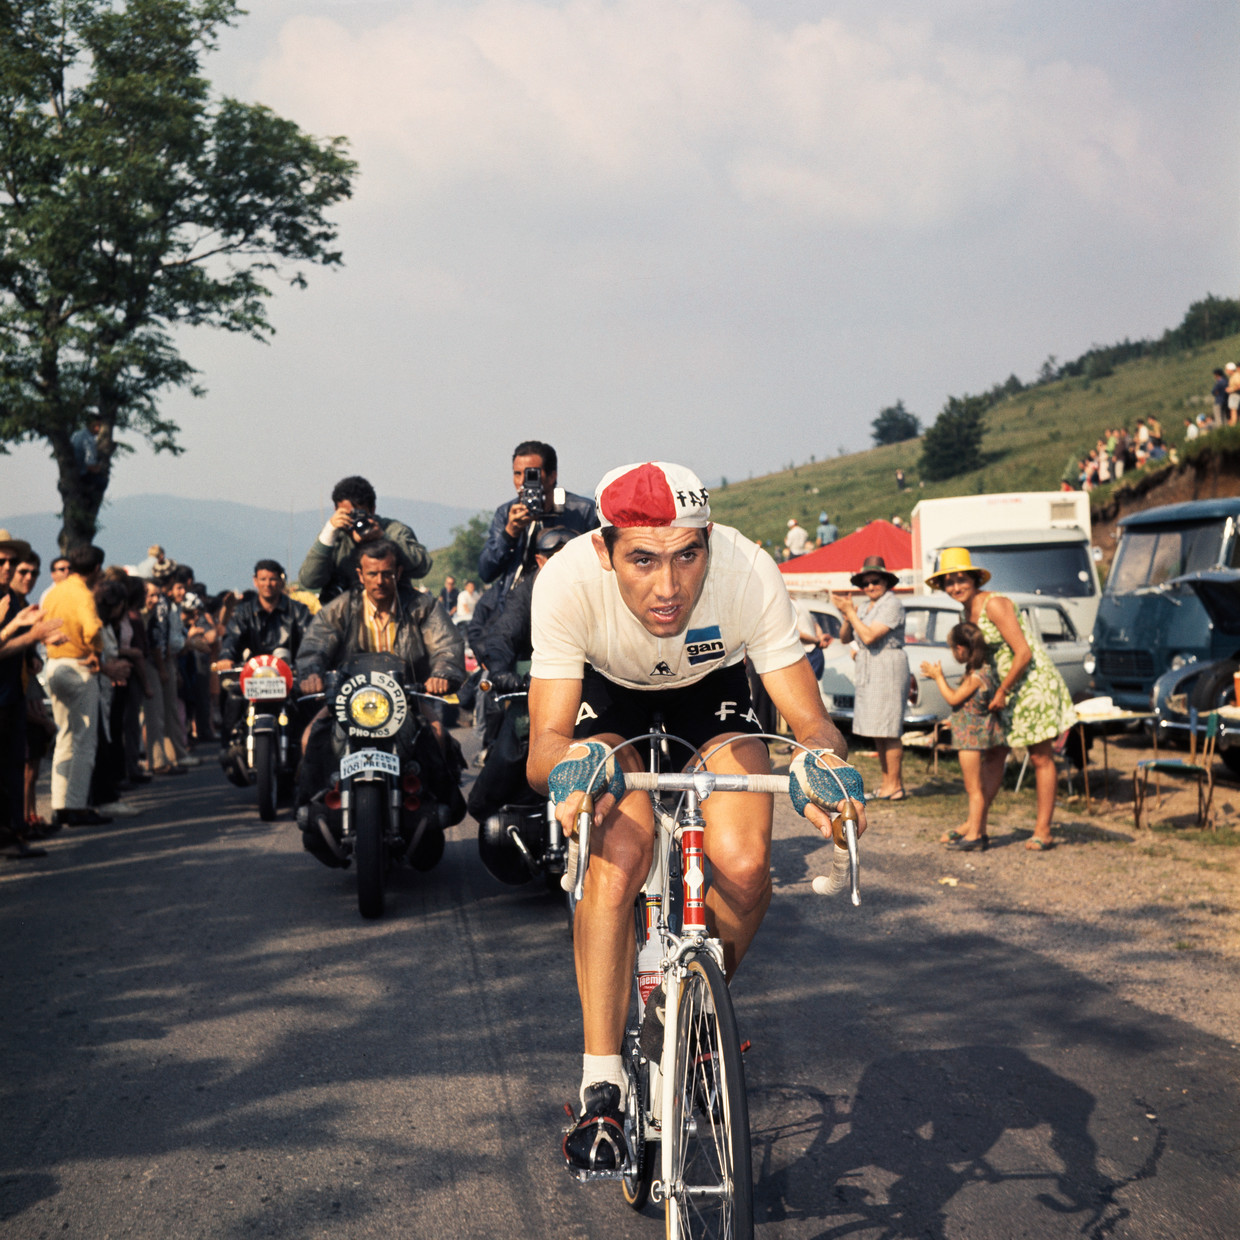 Eddy Merckx in de Tour de France van 1969.